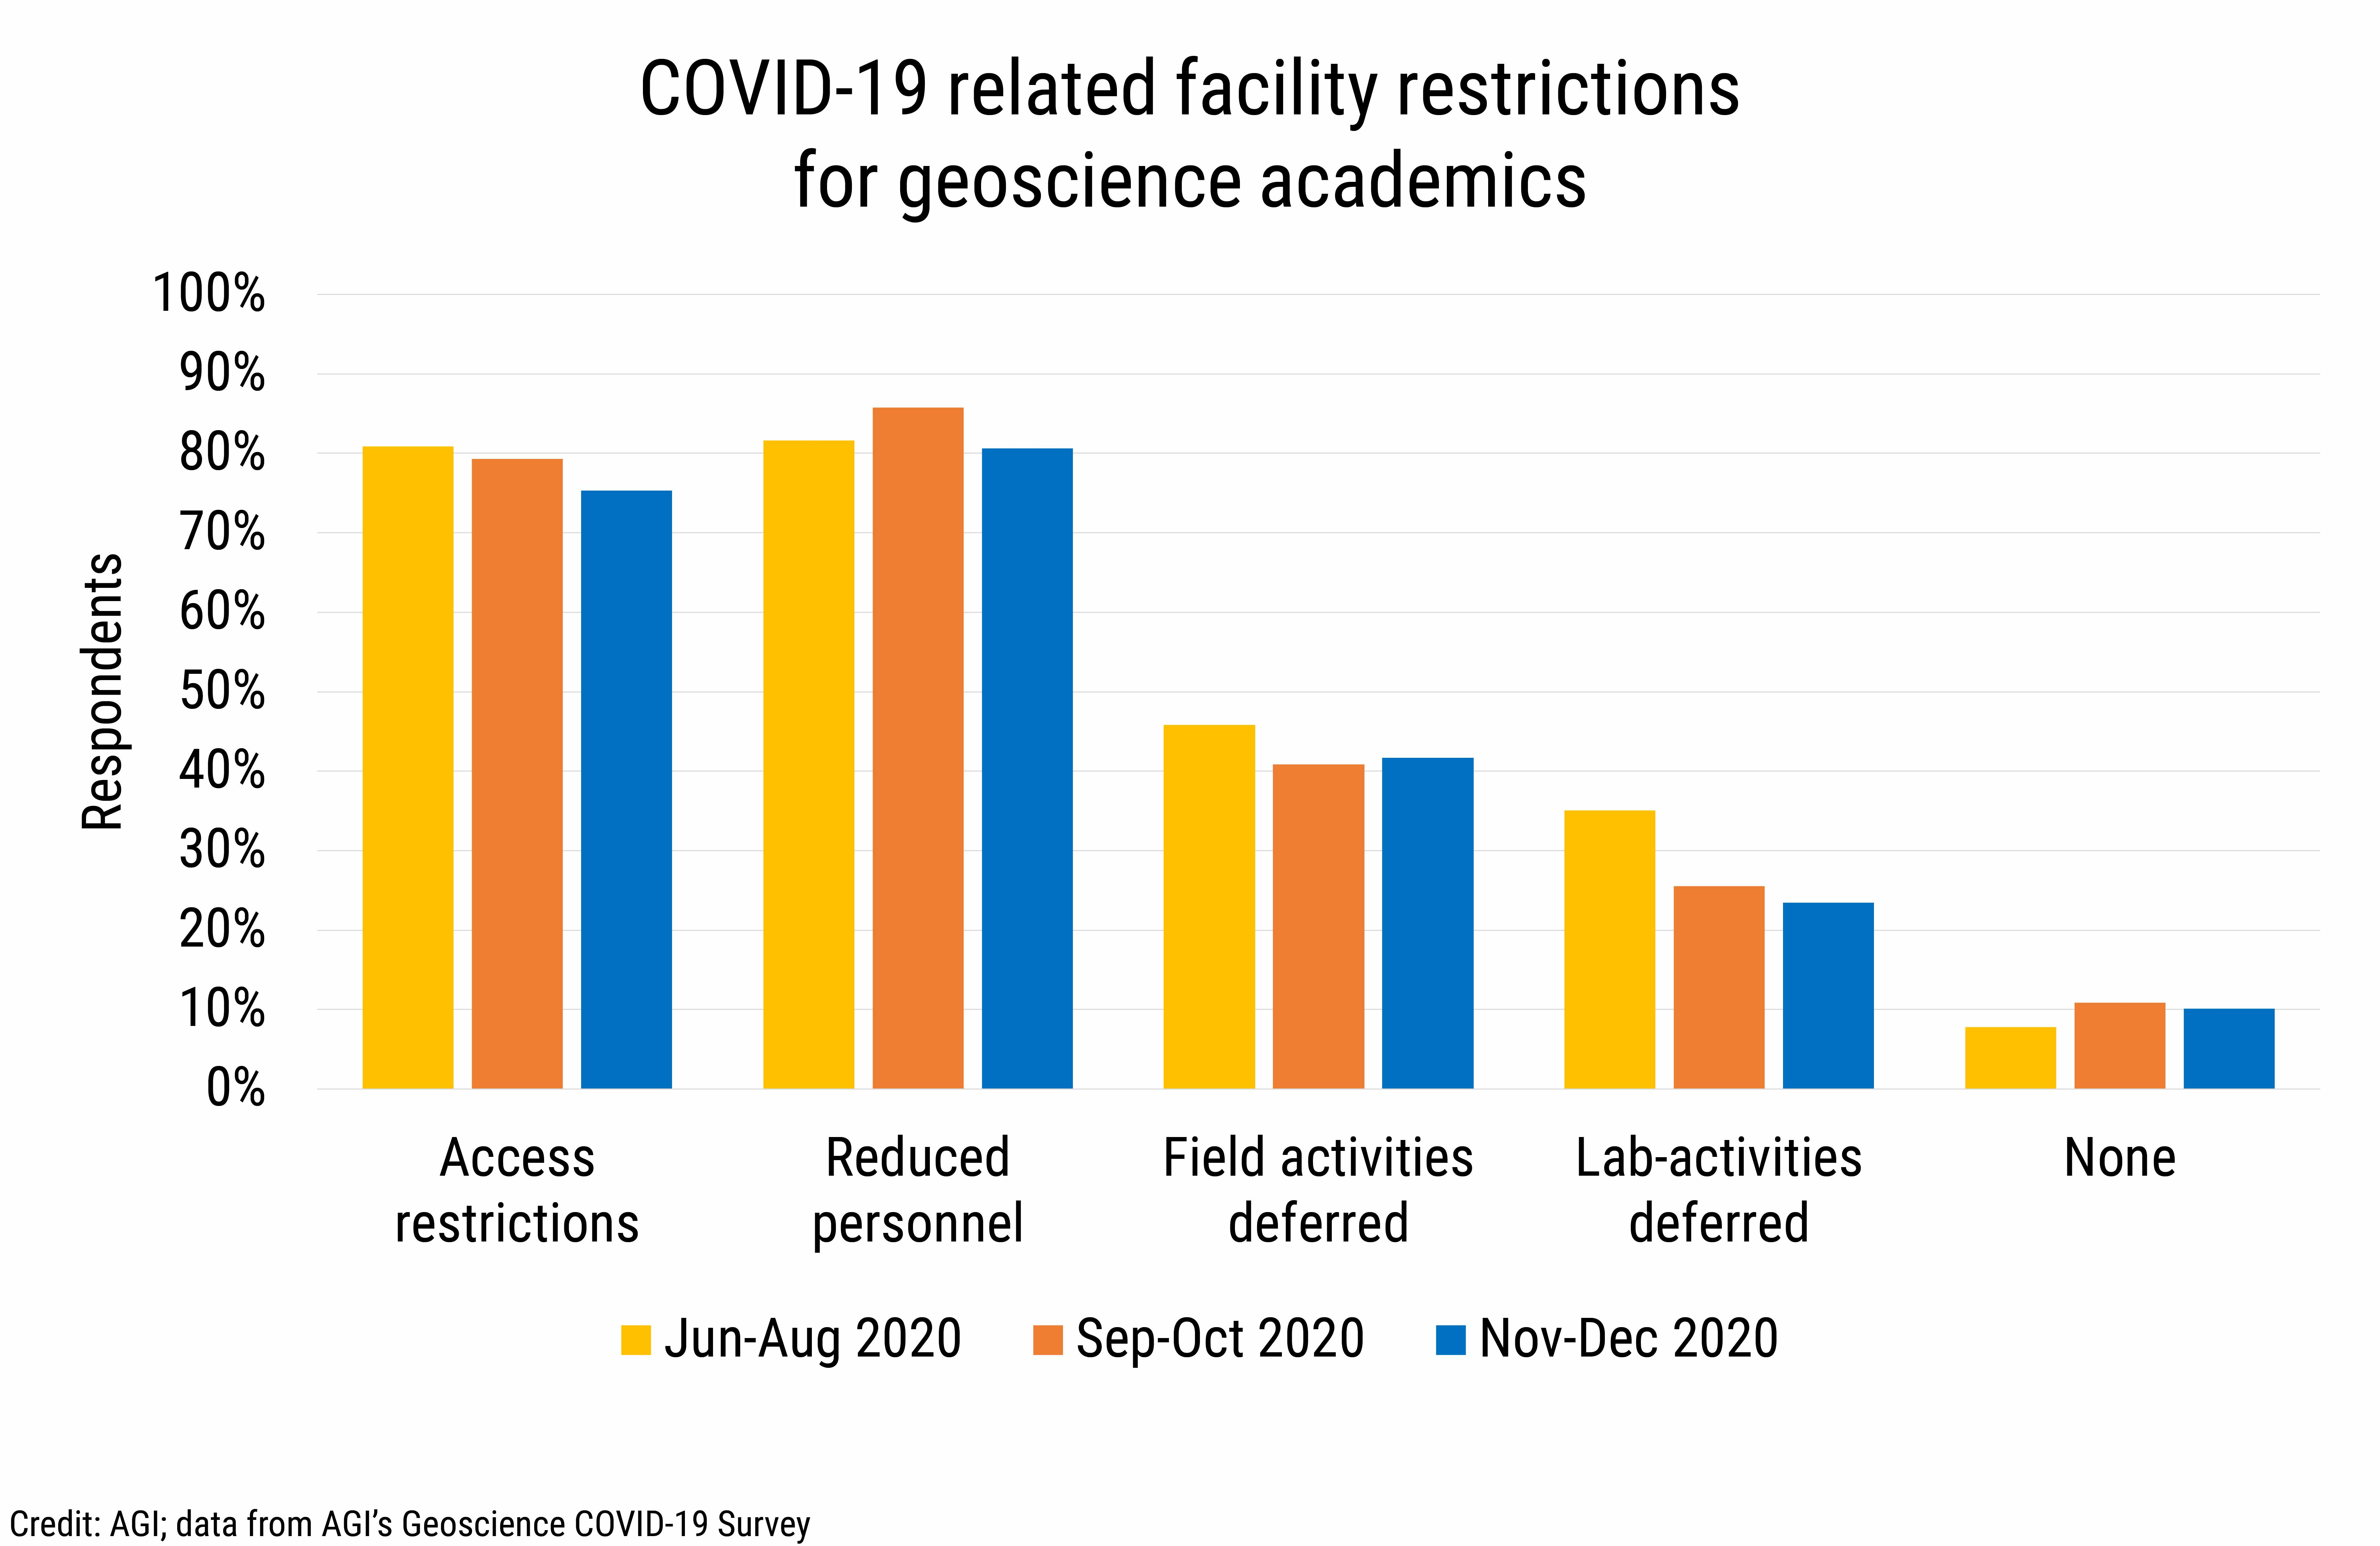 DB_2021-002 chart 09: COVID-19 related facility restrictions for geoscience academics (Credit: AGI; data from AGI's Geoscience COVID-19 Survey)